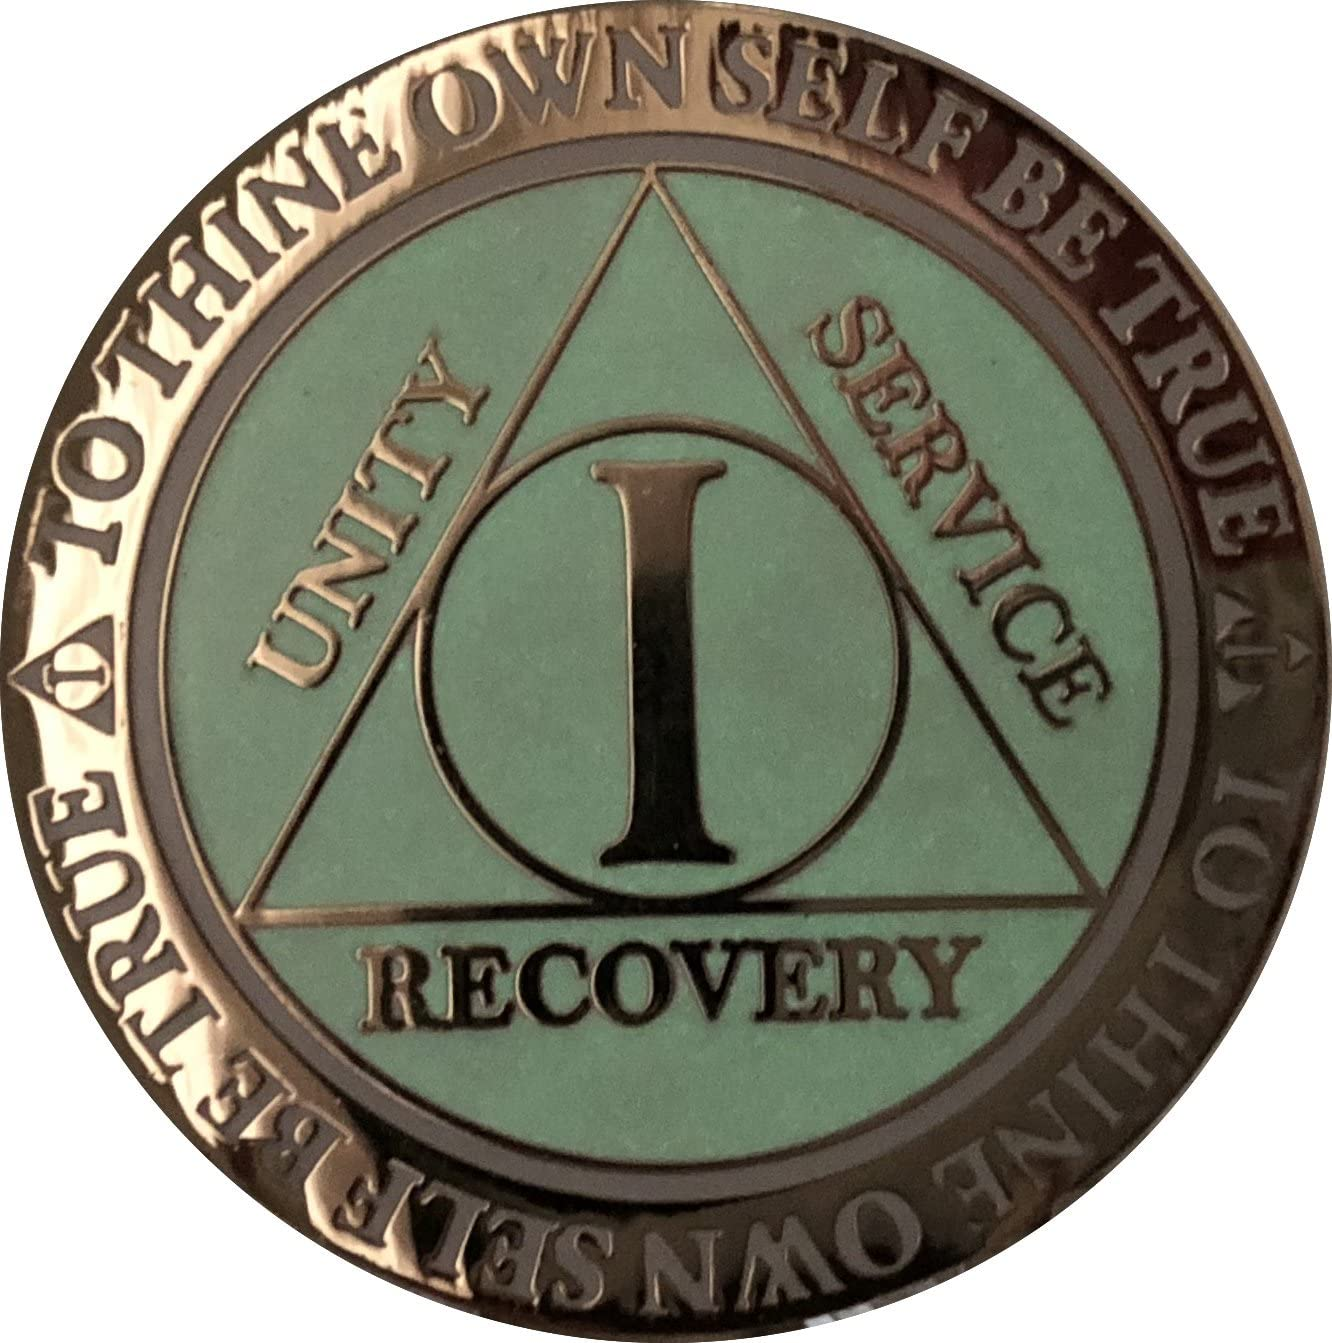 Recoverychip 4 Year AA Medallion Reflex White Glow in The Dark Gold Plated Chip